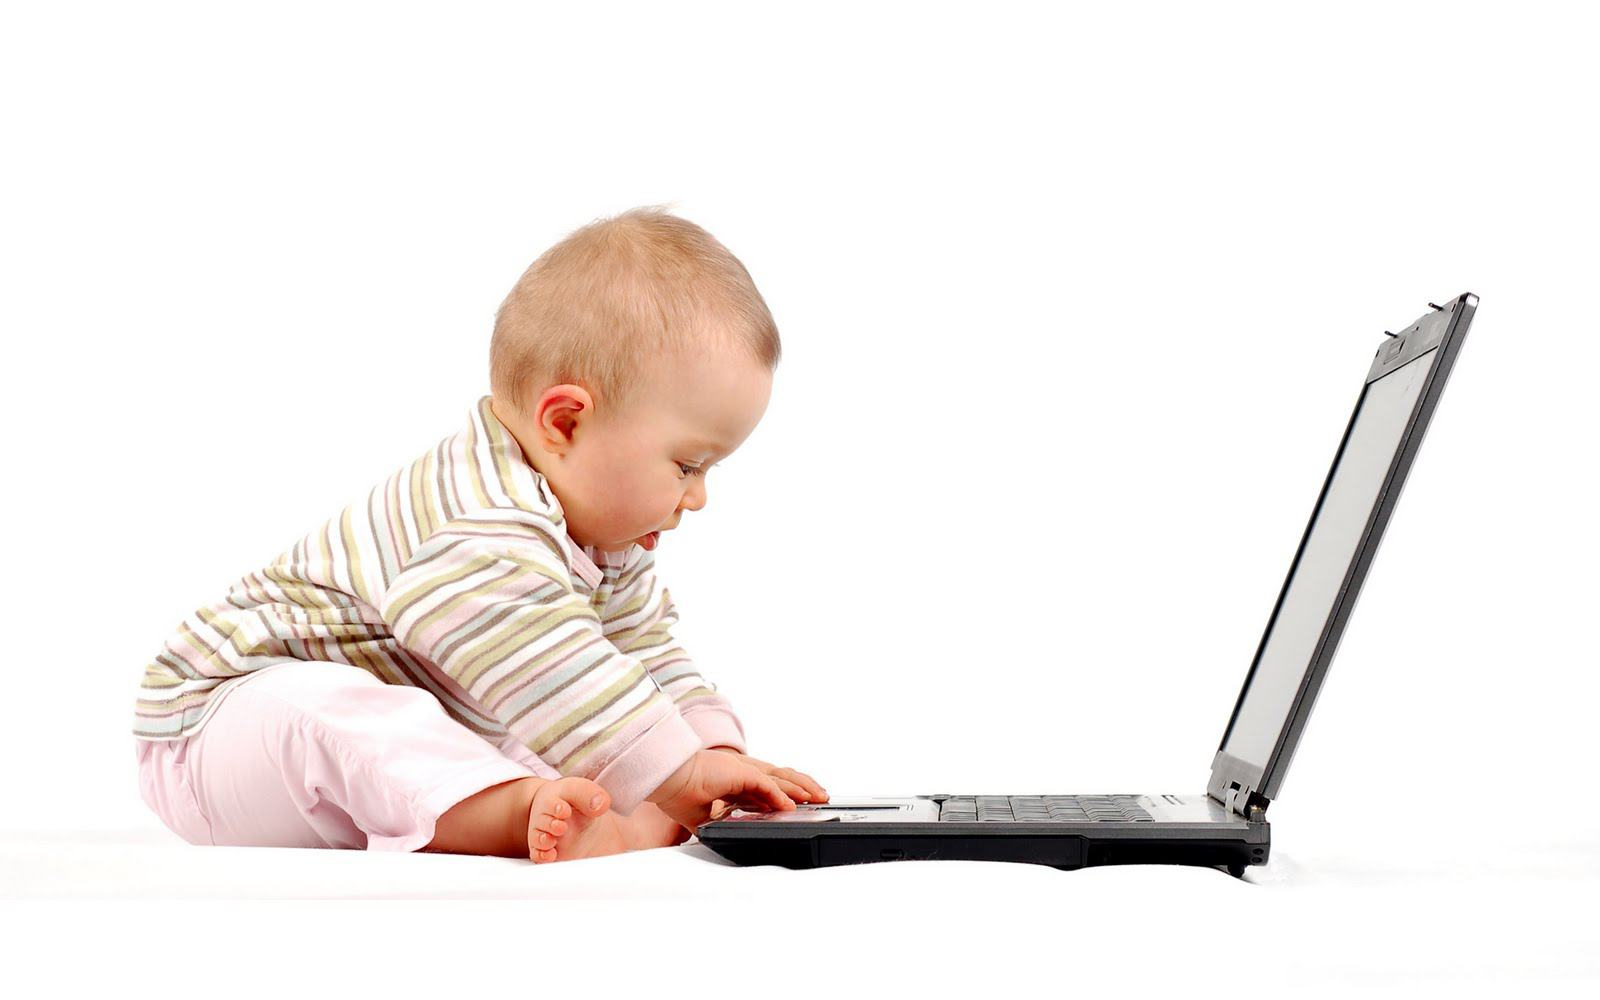 baby-laptop-learn-age-Beautiful-Wallpapers_1600x1000